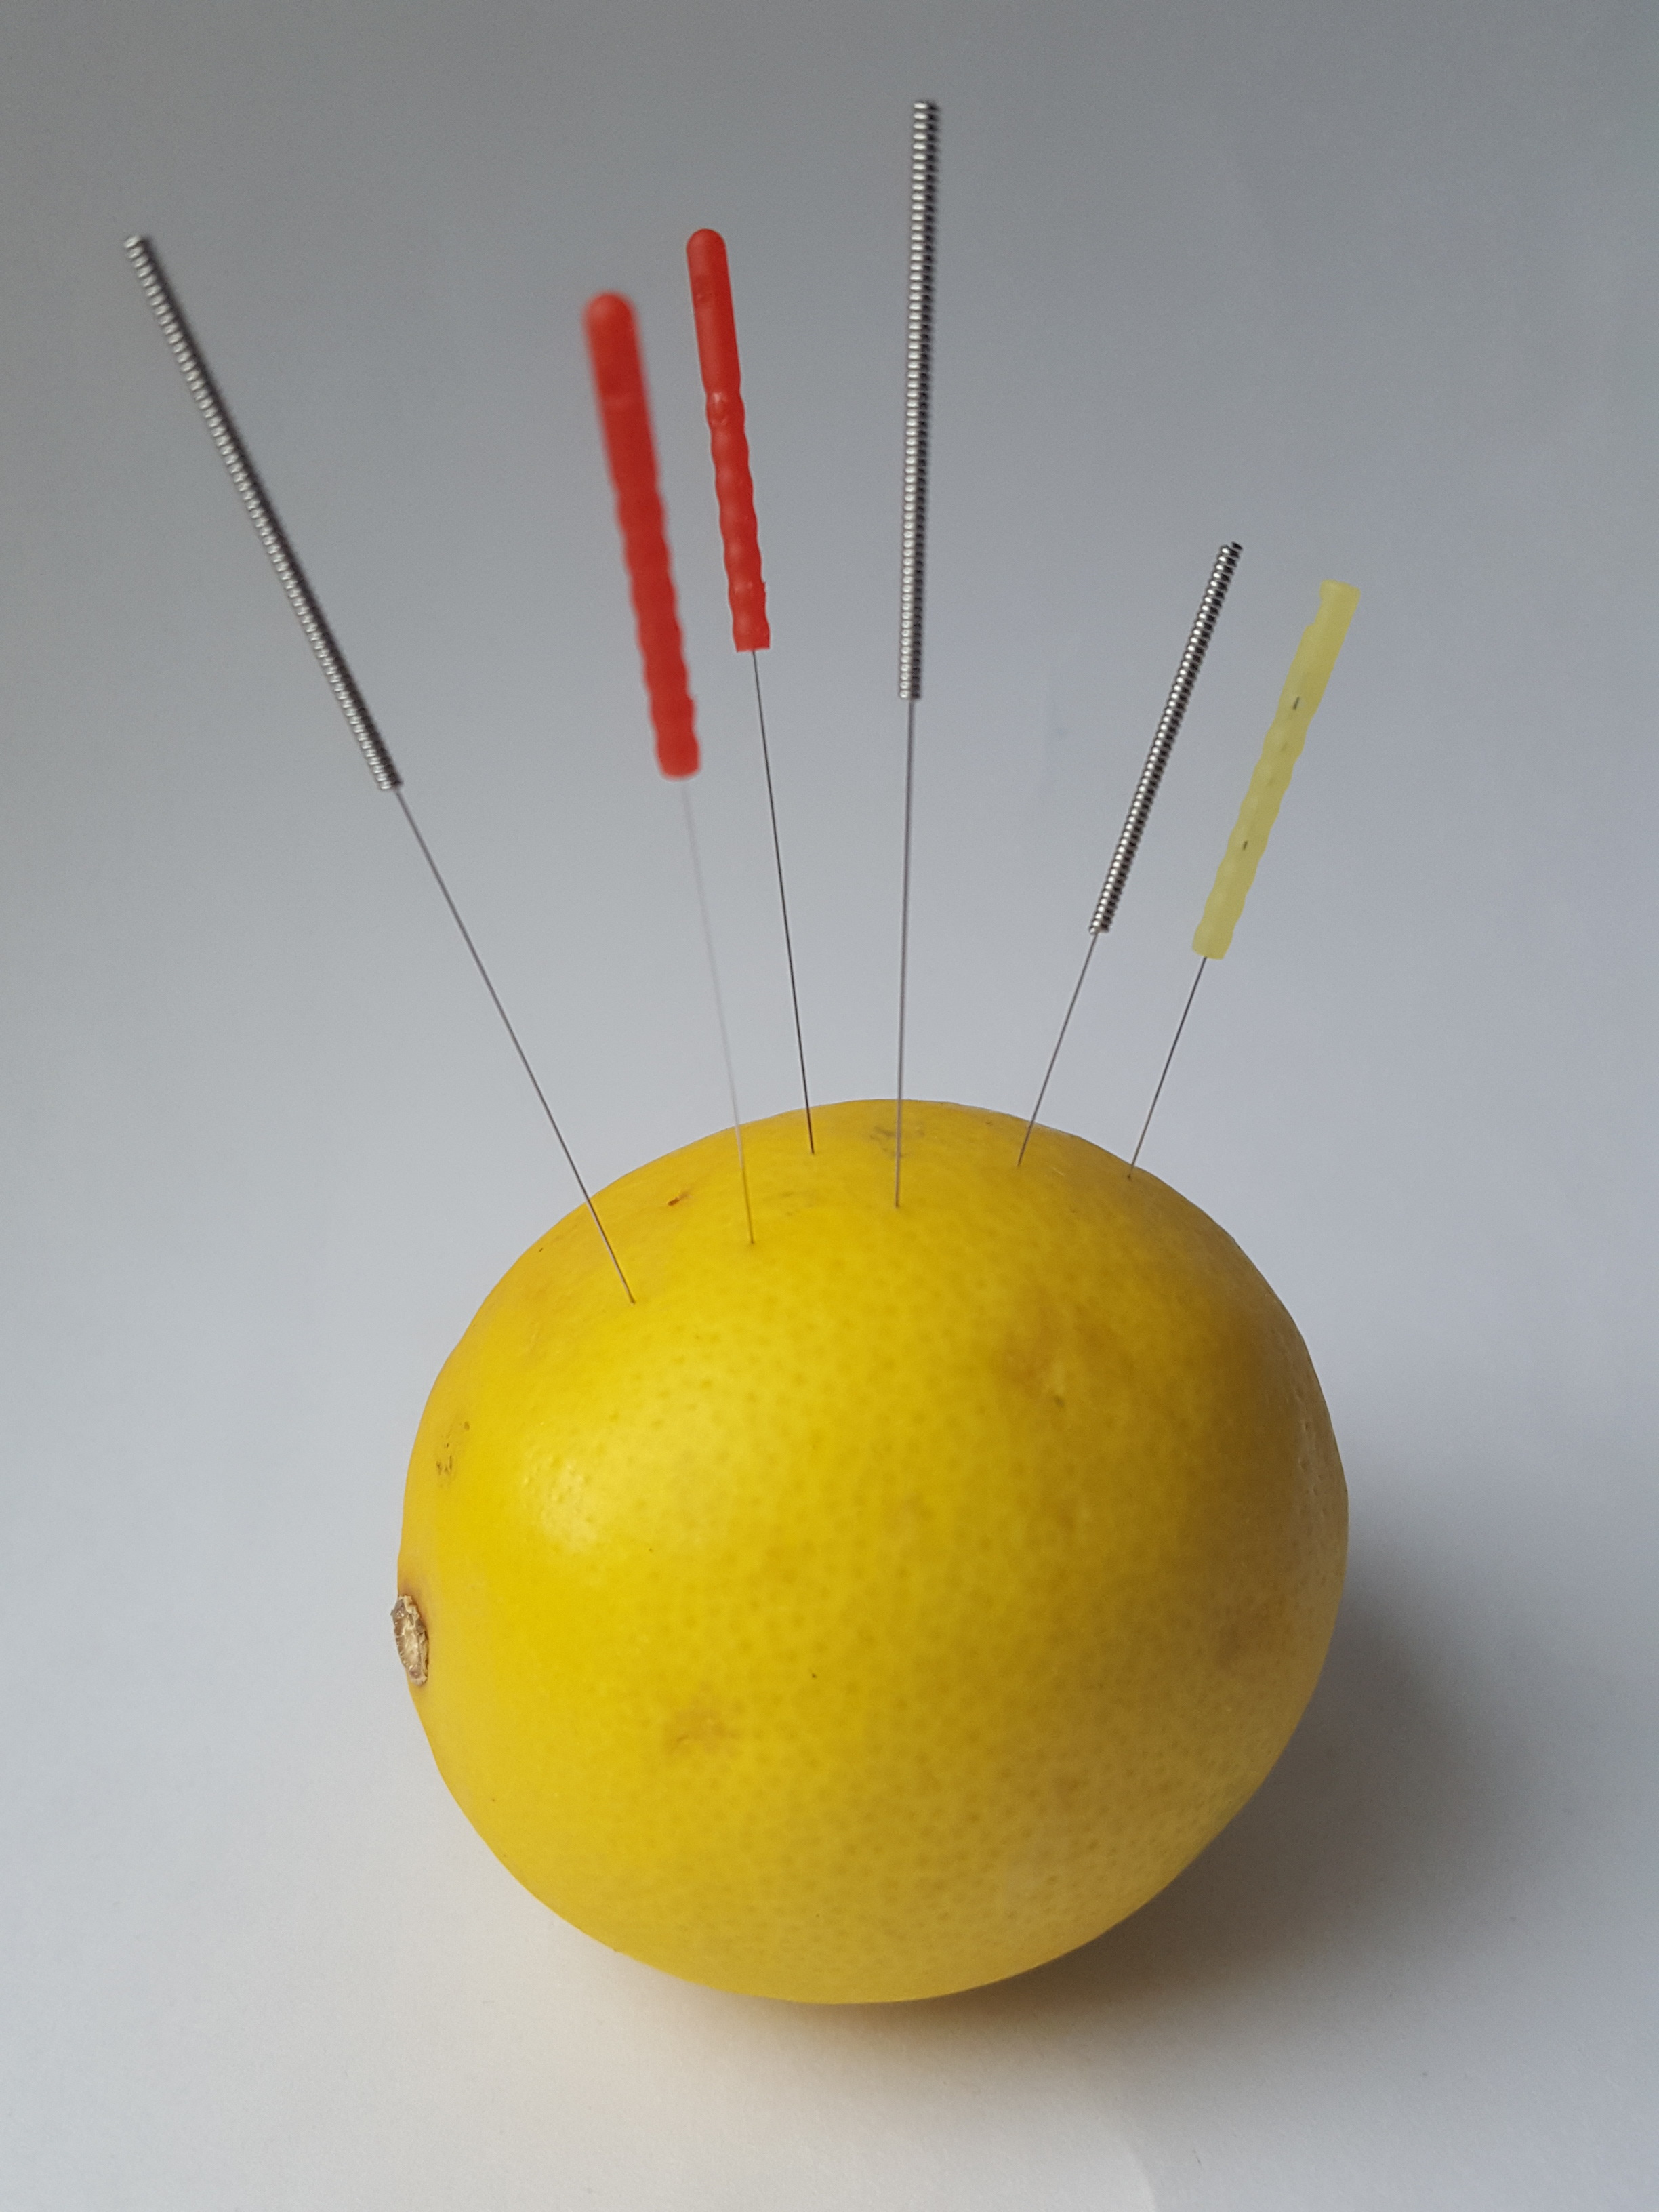 Different sized needles displayed in a lemon.